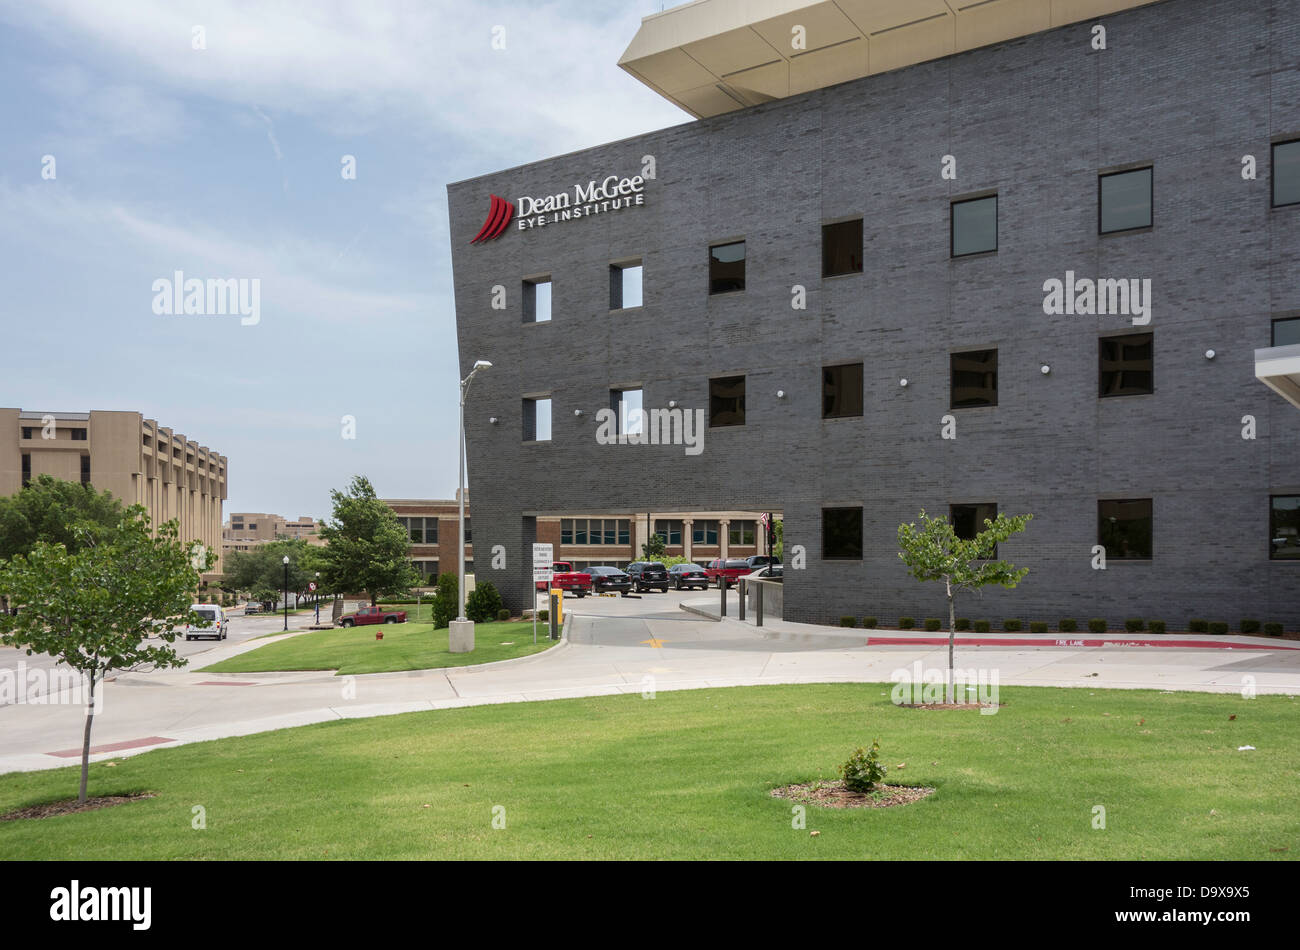 Hotels near dean mcgee eye institute in oklahoma city